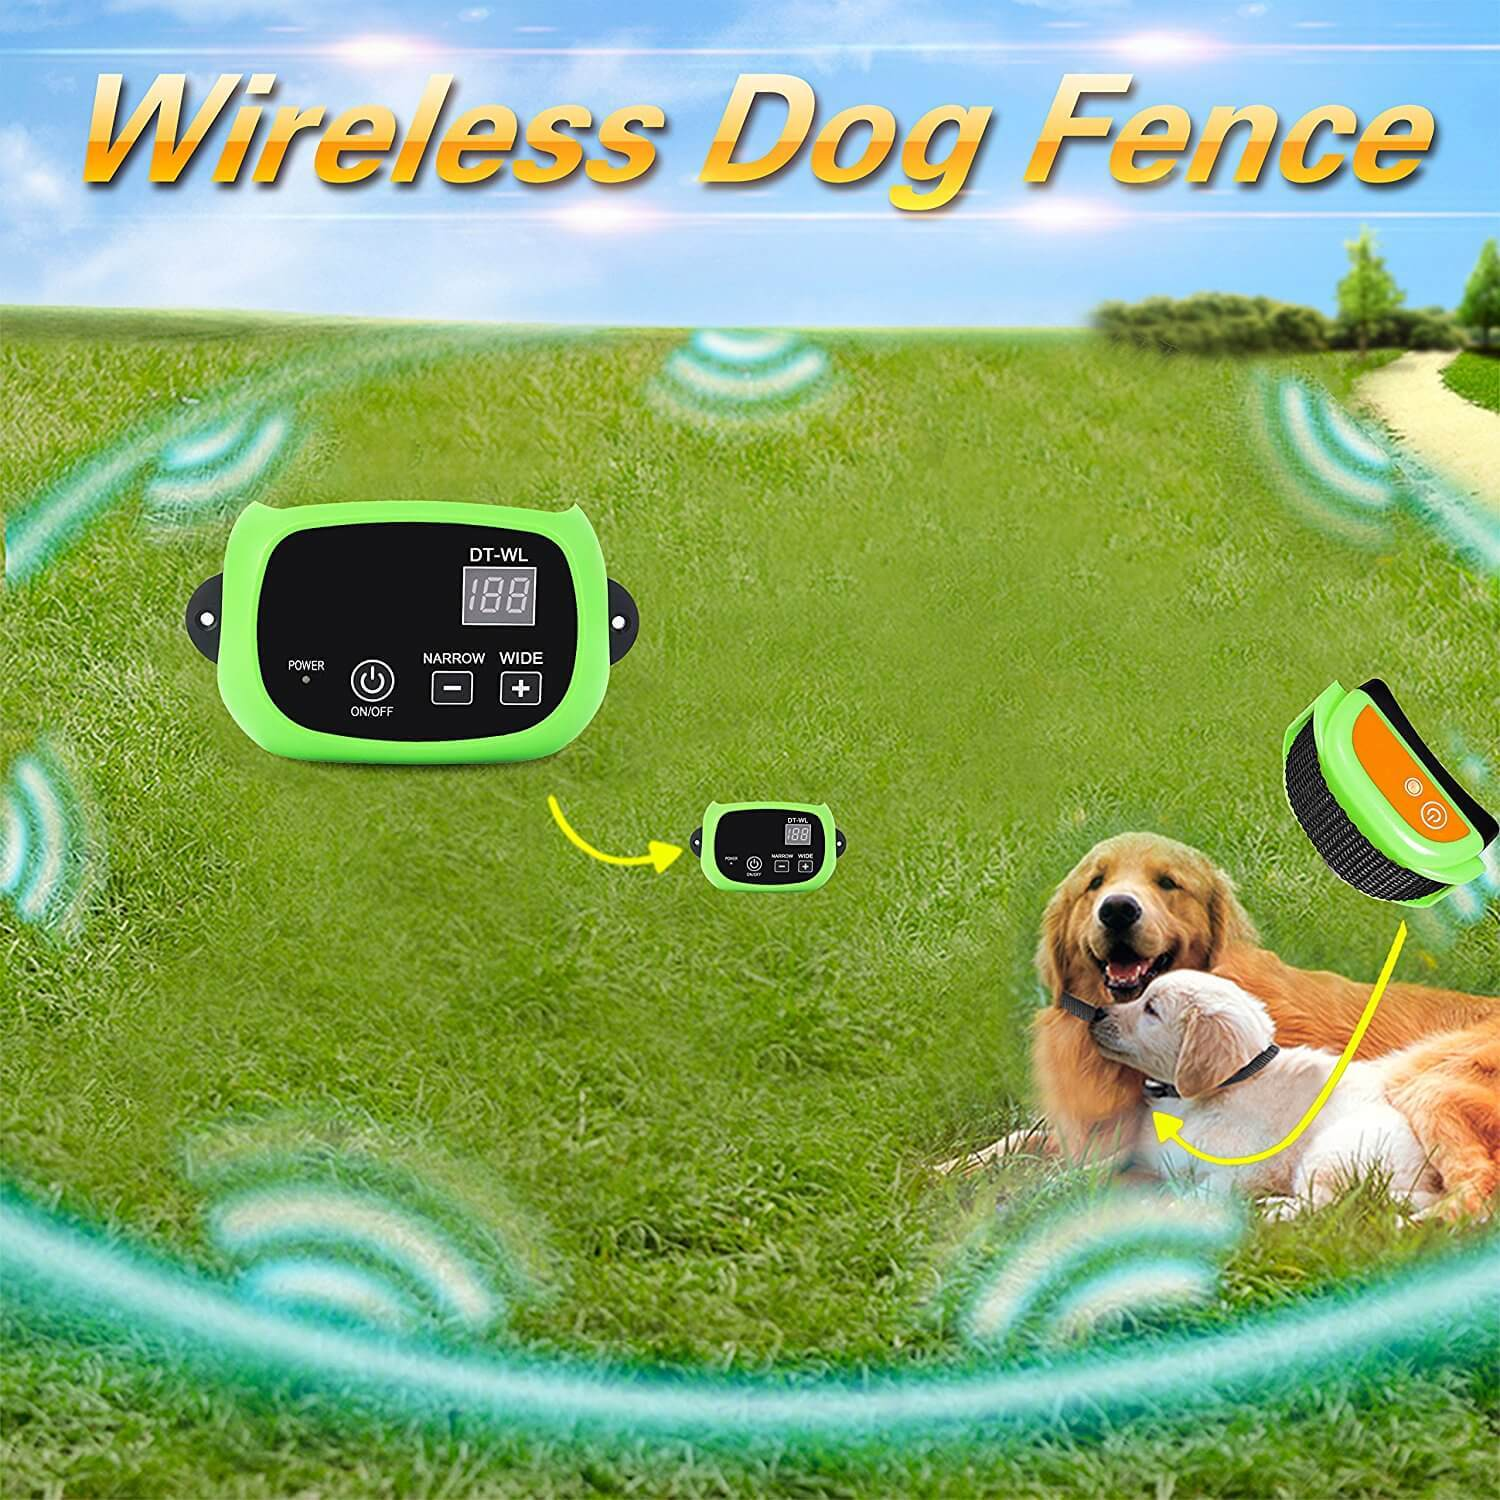 Wireless Dog Fence for Home and Field Usage